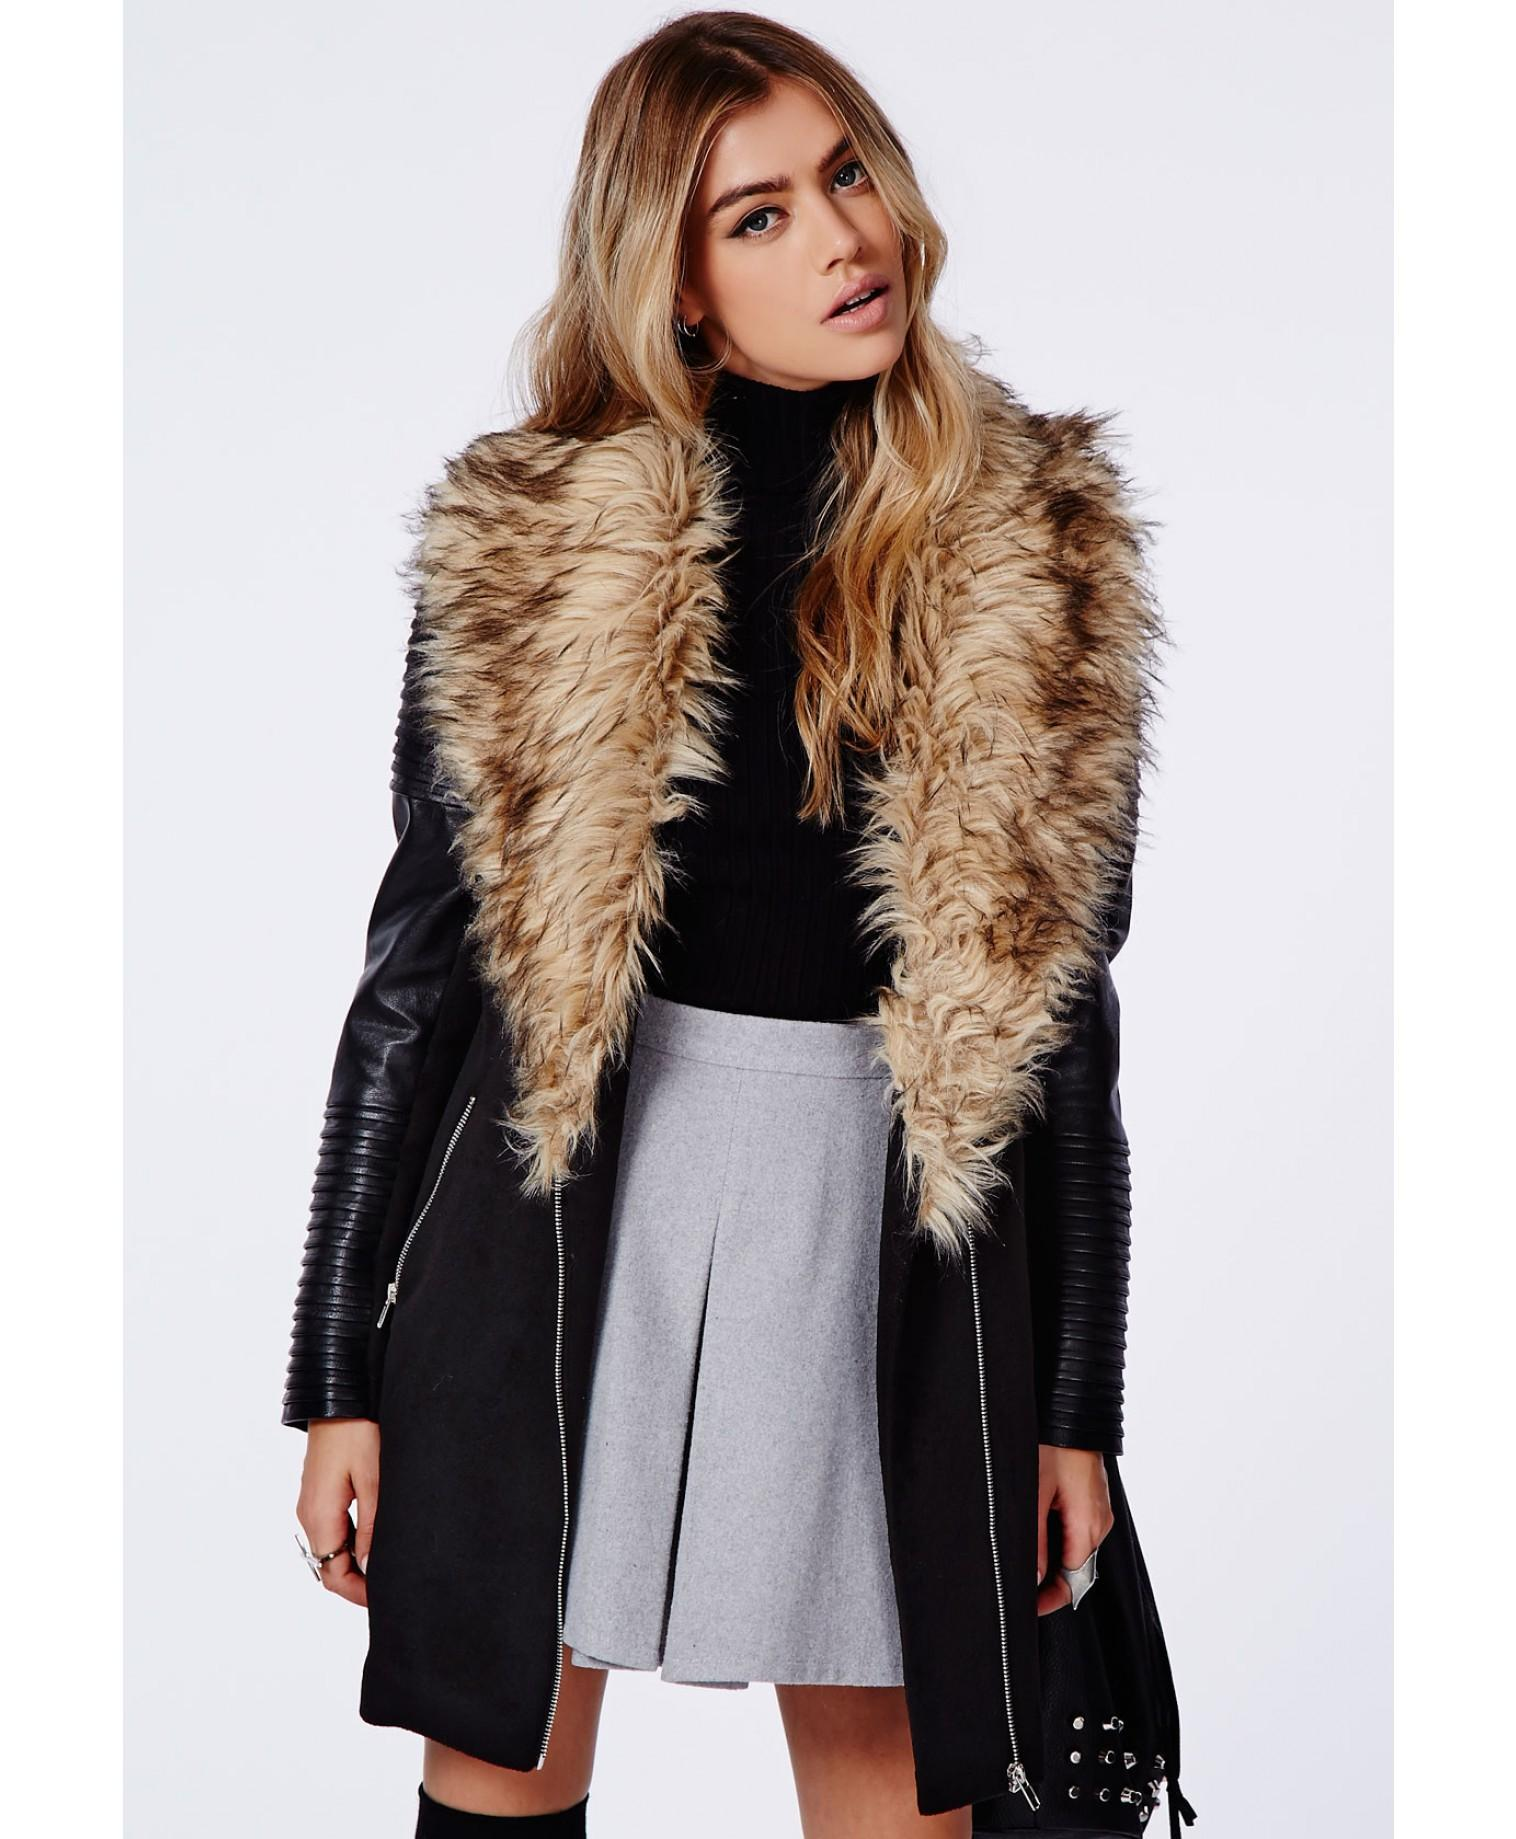 Winter Coat Leather Sleeves | Down Coat